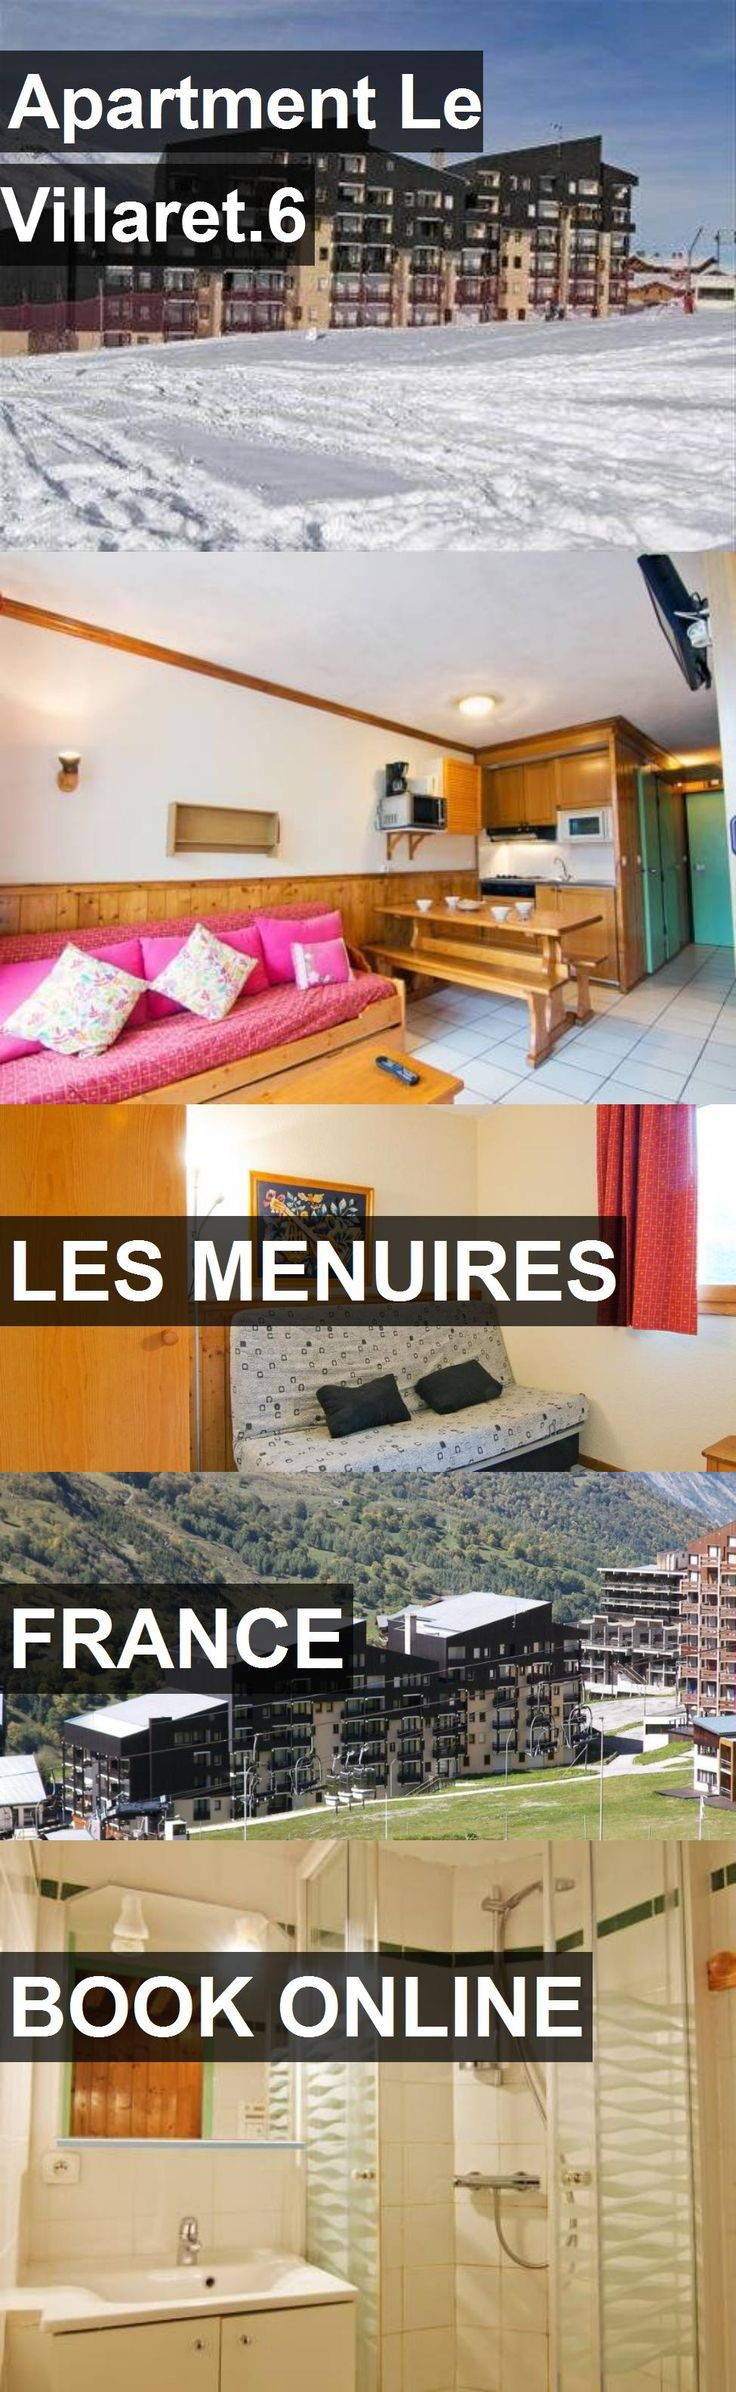 Apartment Le Villaret.6 in Les Menuires, France. For more information, photos, reviews and best prices please follow the link. #France #LesMenuires #travel #vacation #apartment